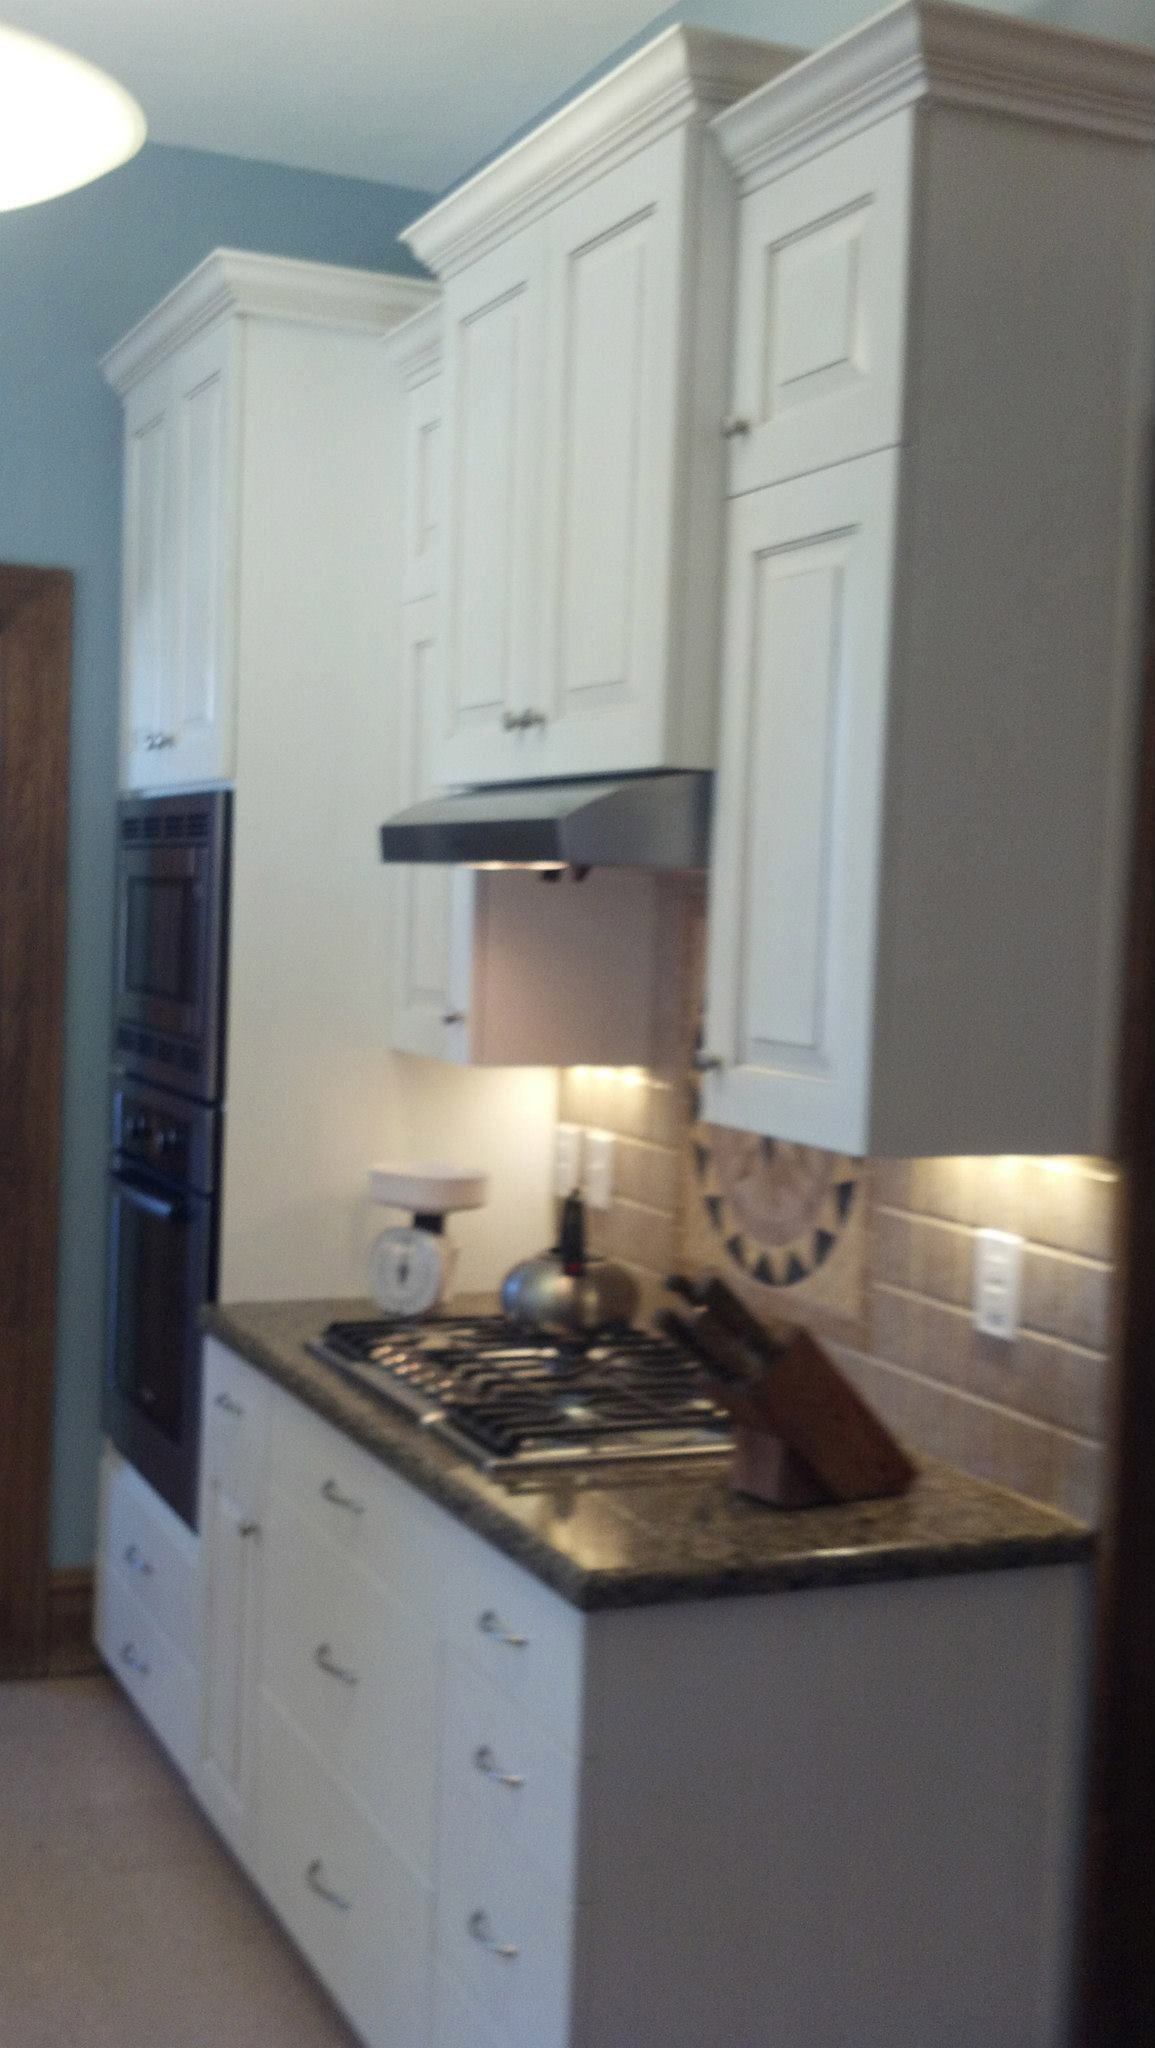 Delicieux Stainless Steel Under Cabinet Proline Range Hood Install By Ivy League  Builders.